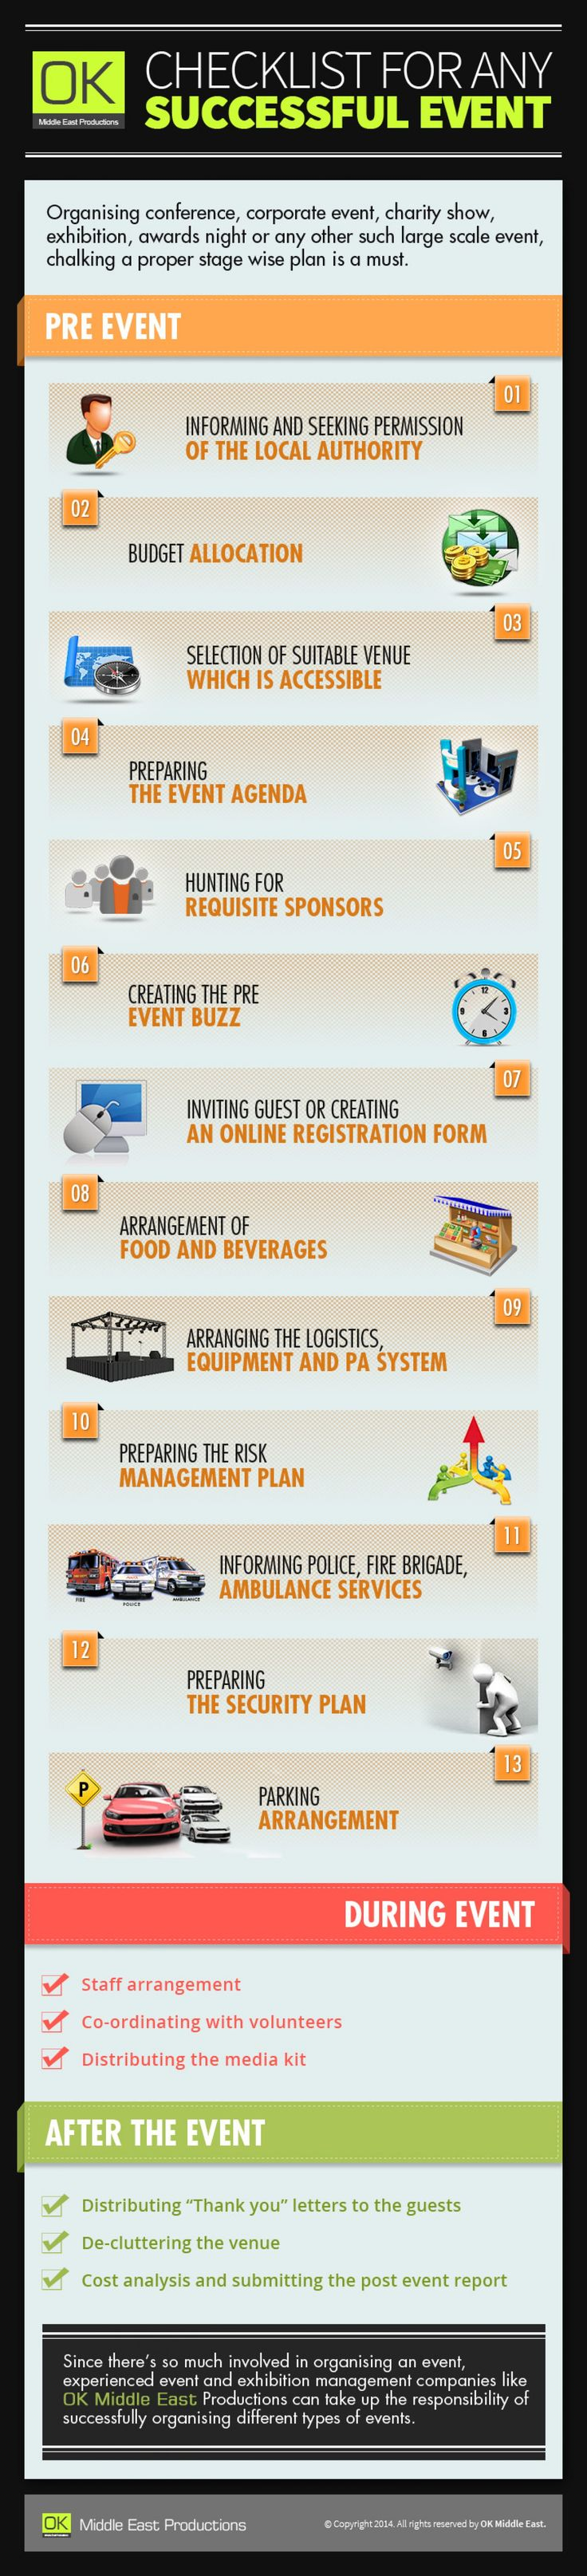 Checklist for any Successful Event - #Infographic